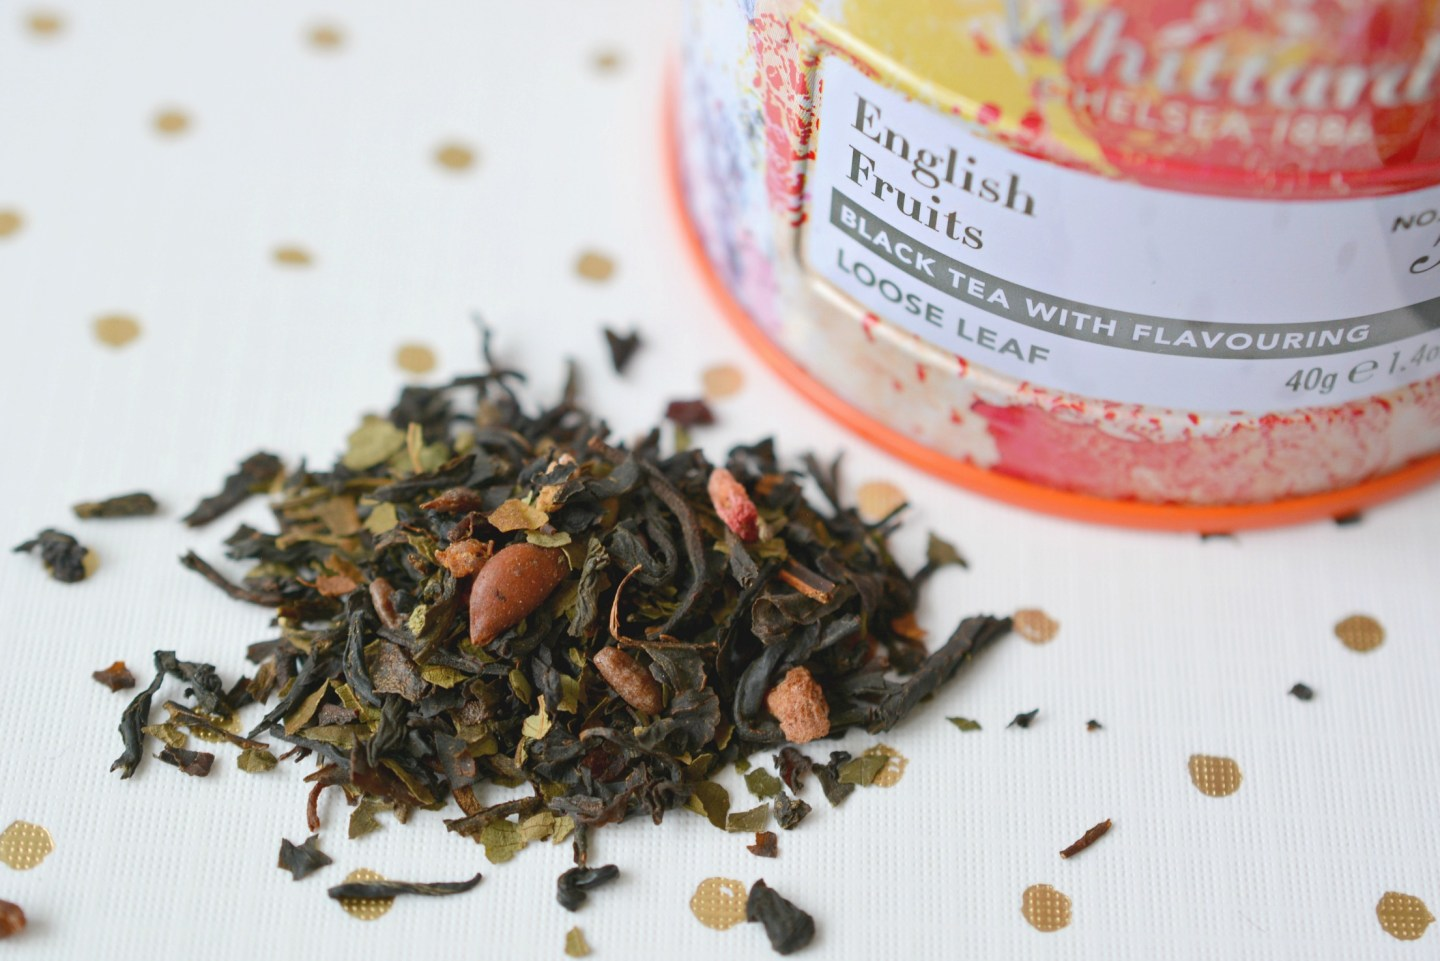 Joining the Loose Leaf Tea Revolution! Whittard English Fruits tea.